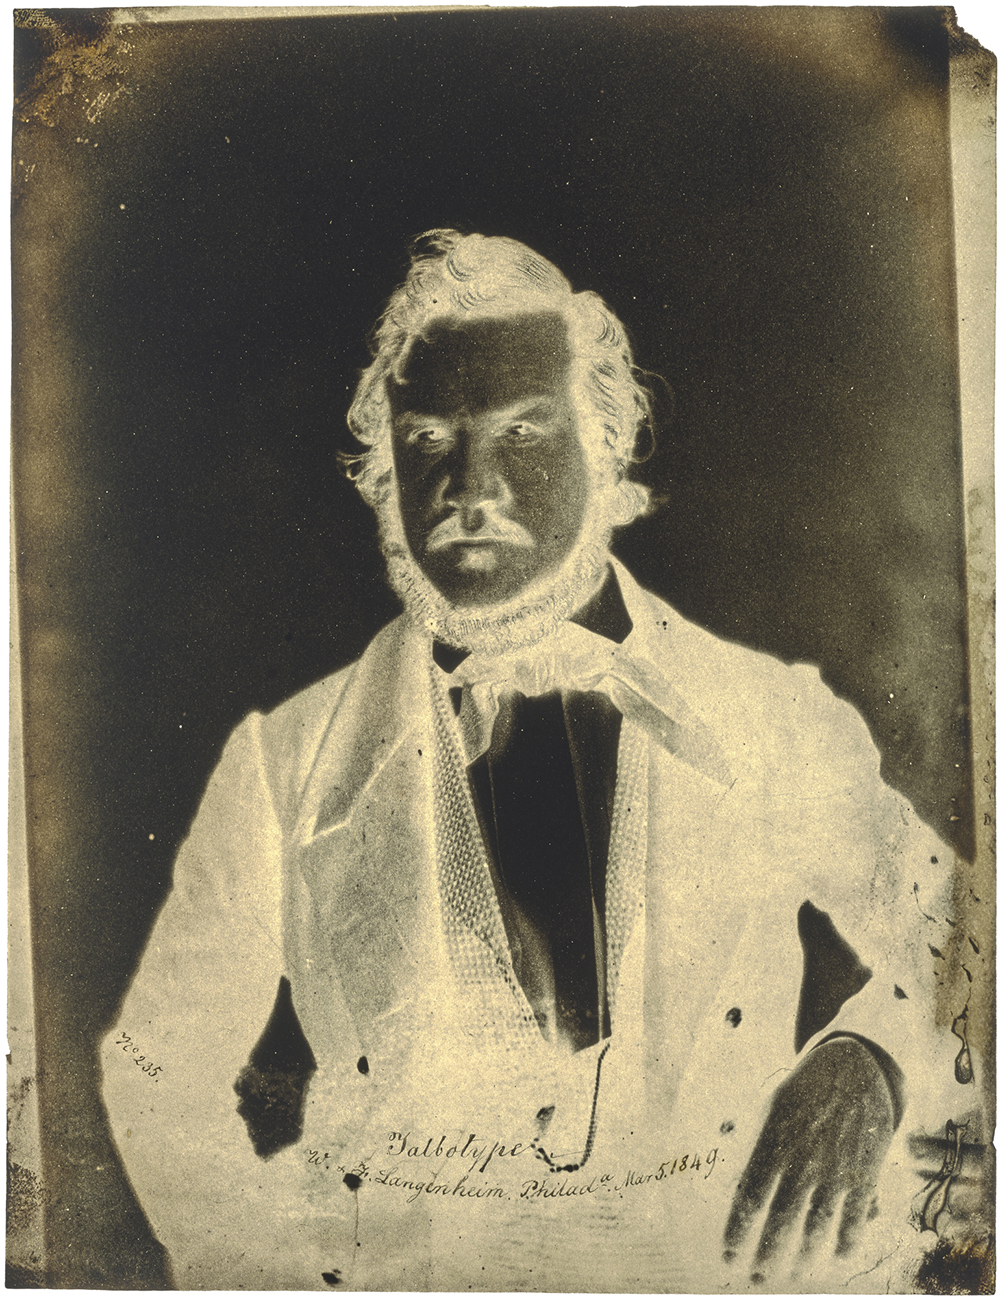 Portrait of Frederick Langenheim, March 1849, Langenheim Brothers [Frederick and William Langenheim] (American, born Germany, 1841/1842 - 1874). Waxed paper negative. Sheet: 19.4 × 15 cm (7 5/8 × 5 7/8 in.). The J. Paul Getty Museum, Los Angeles